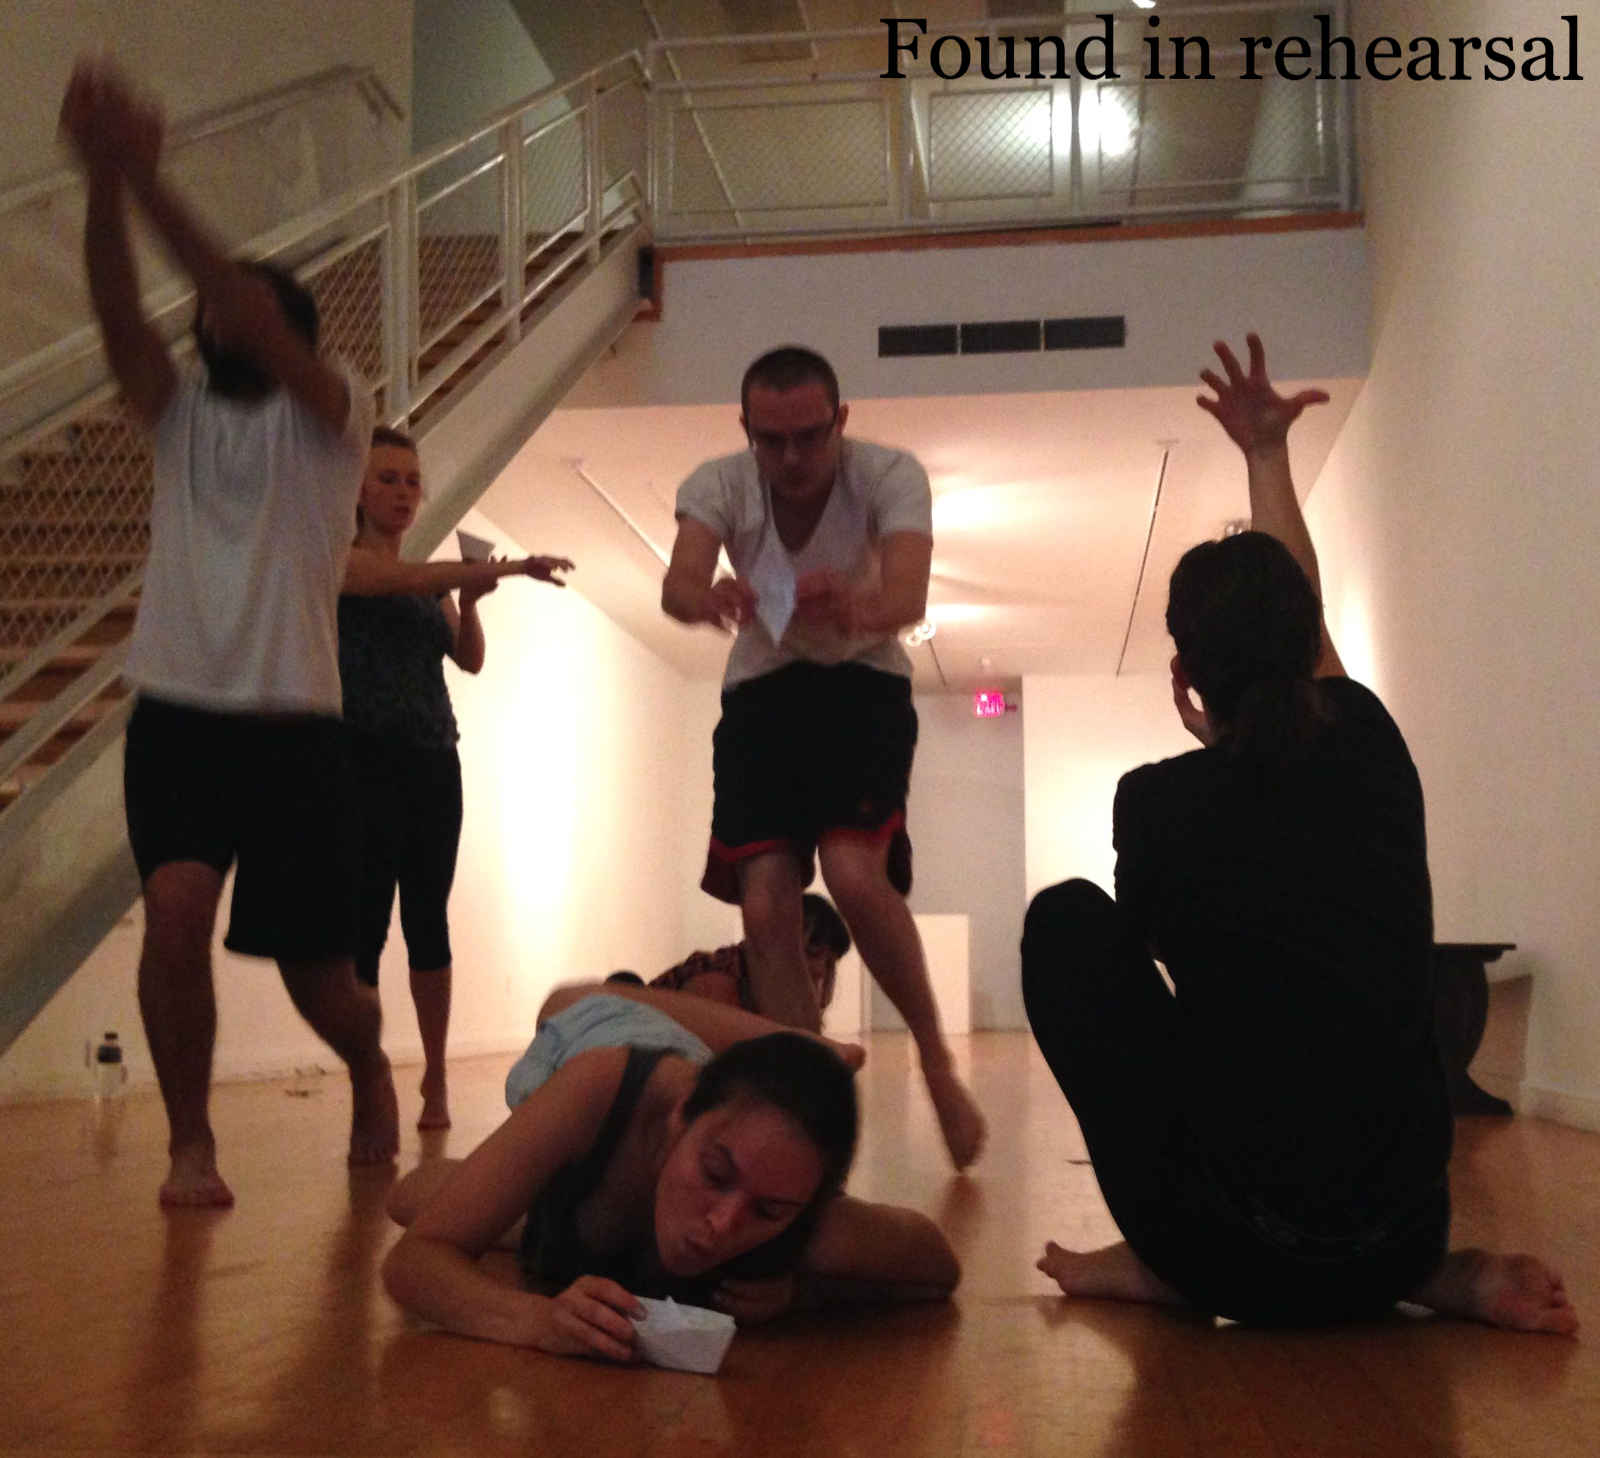 Found Theater Company in rehearsal